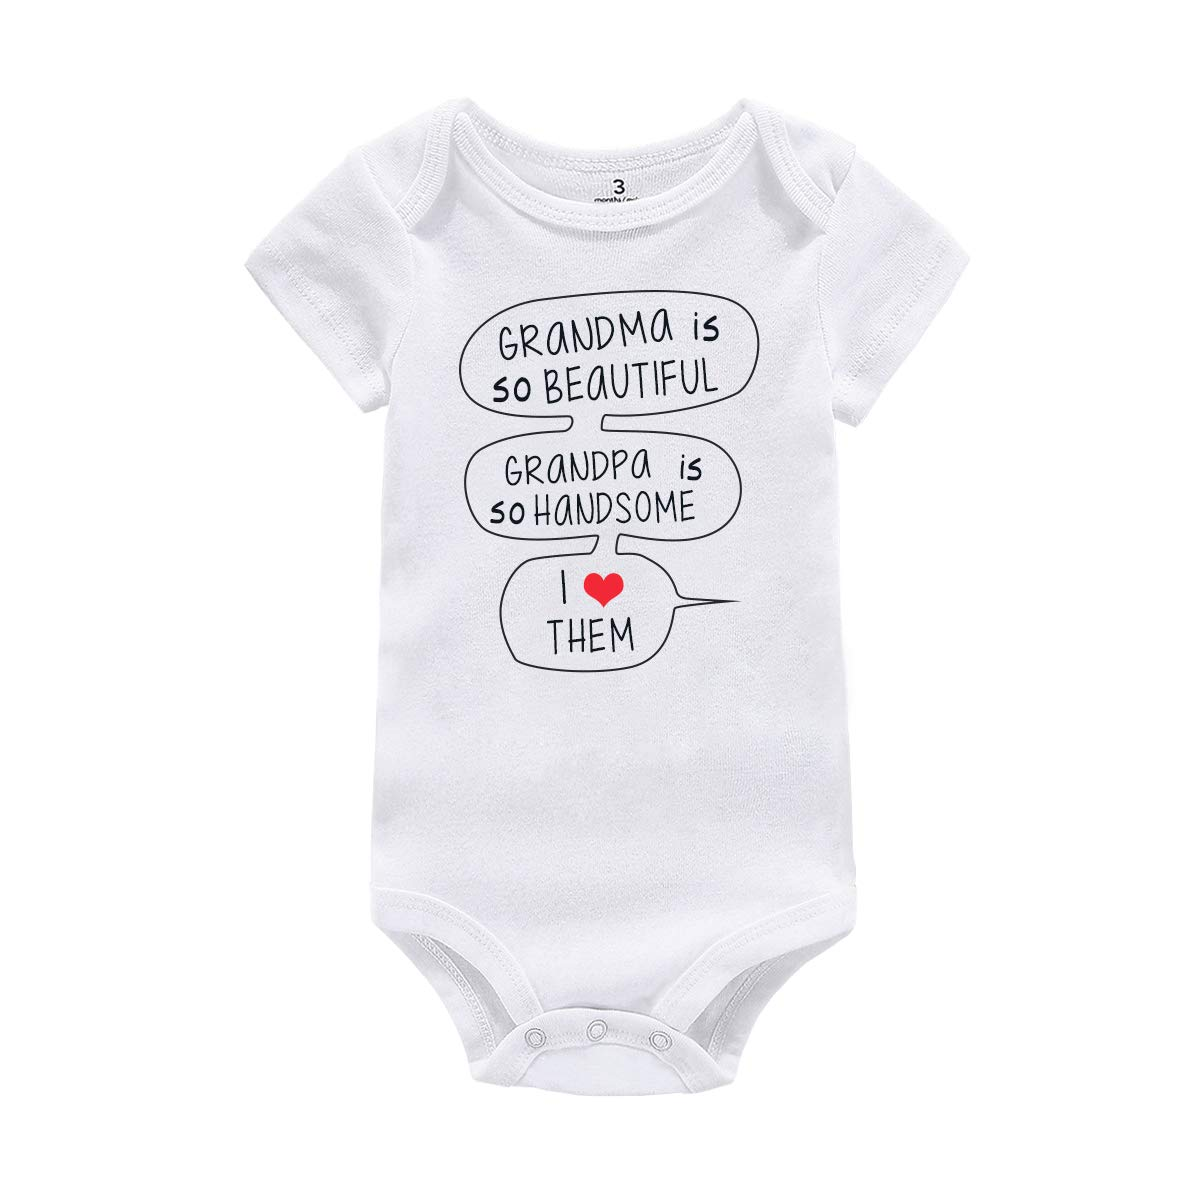 WINZIK Baby Boy Girl One-Piece Romper Bodysuit Outfit Funny Grandpa Grandma Infant Creeper Jumpsuit Shirt Clothing Gift